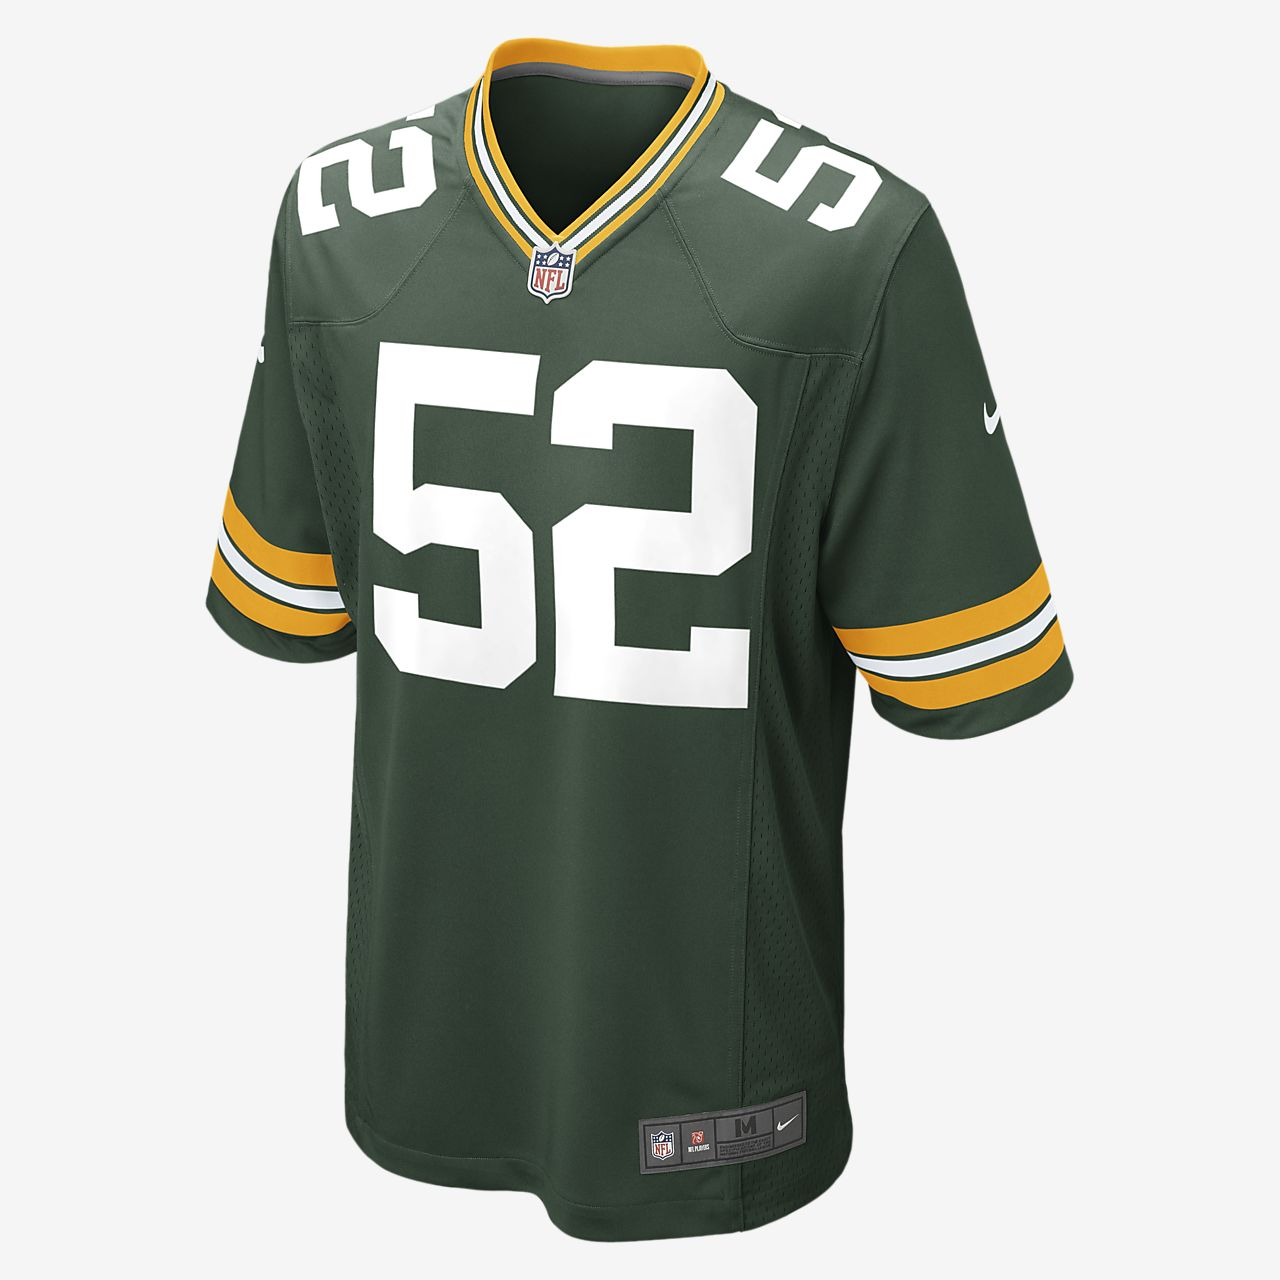 size 40 920c3 76bc6 NFL Green Bay Packers (Clay Matthews) Men's Football Home Game Jersey